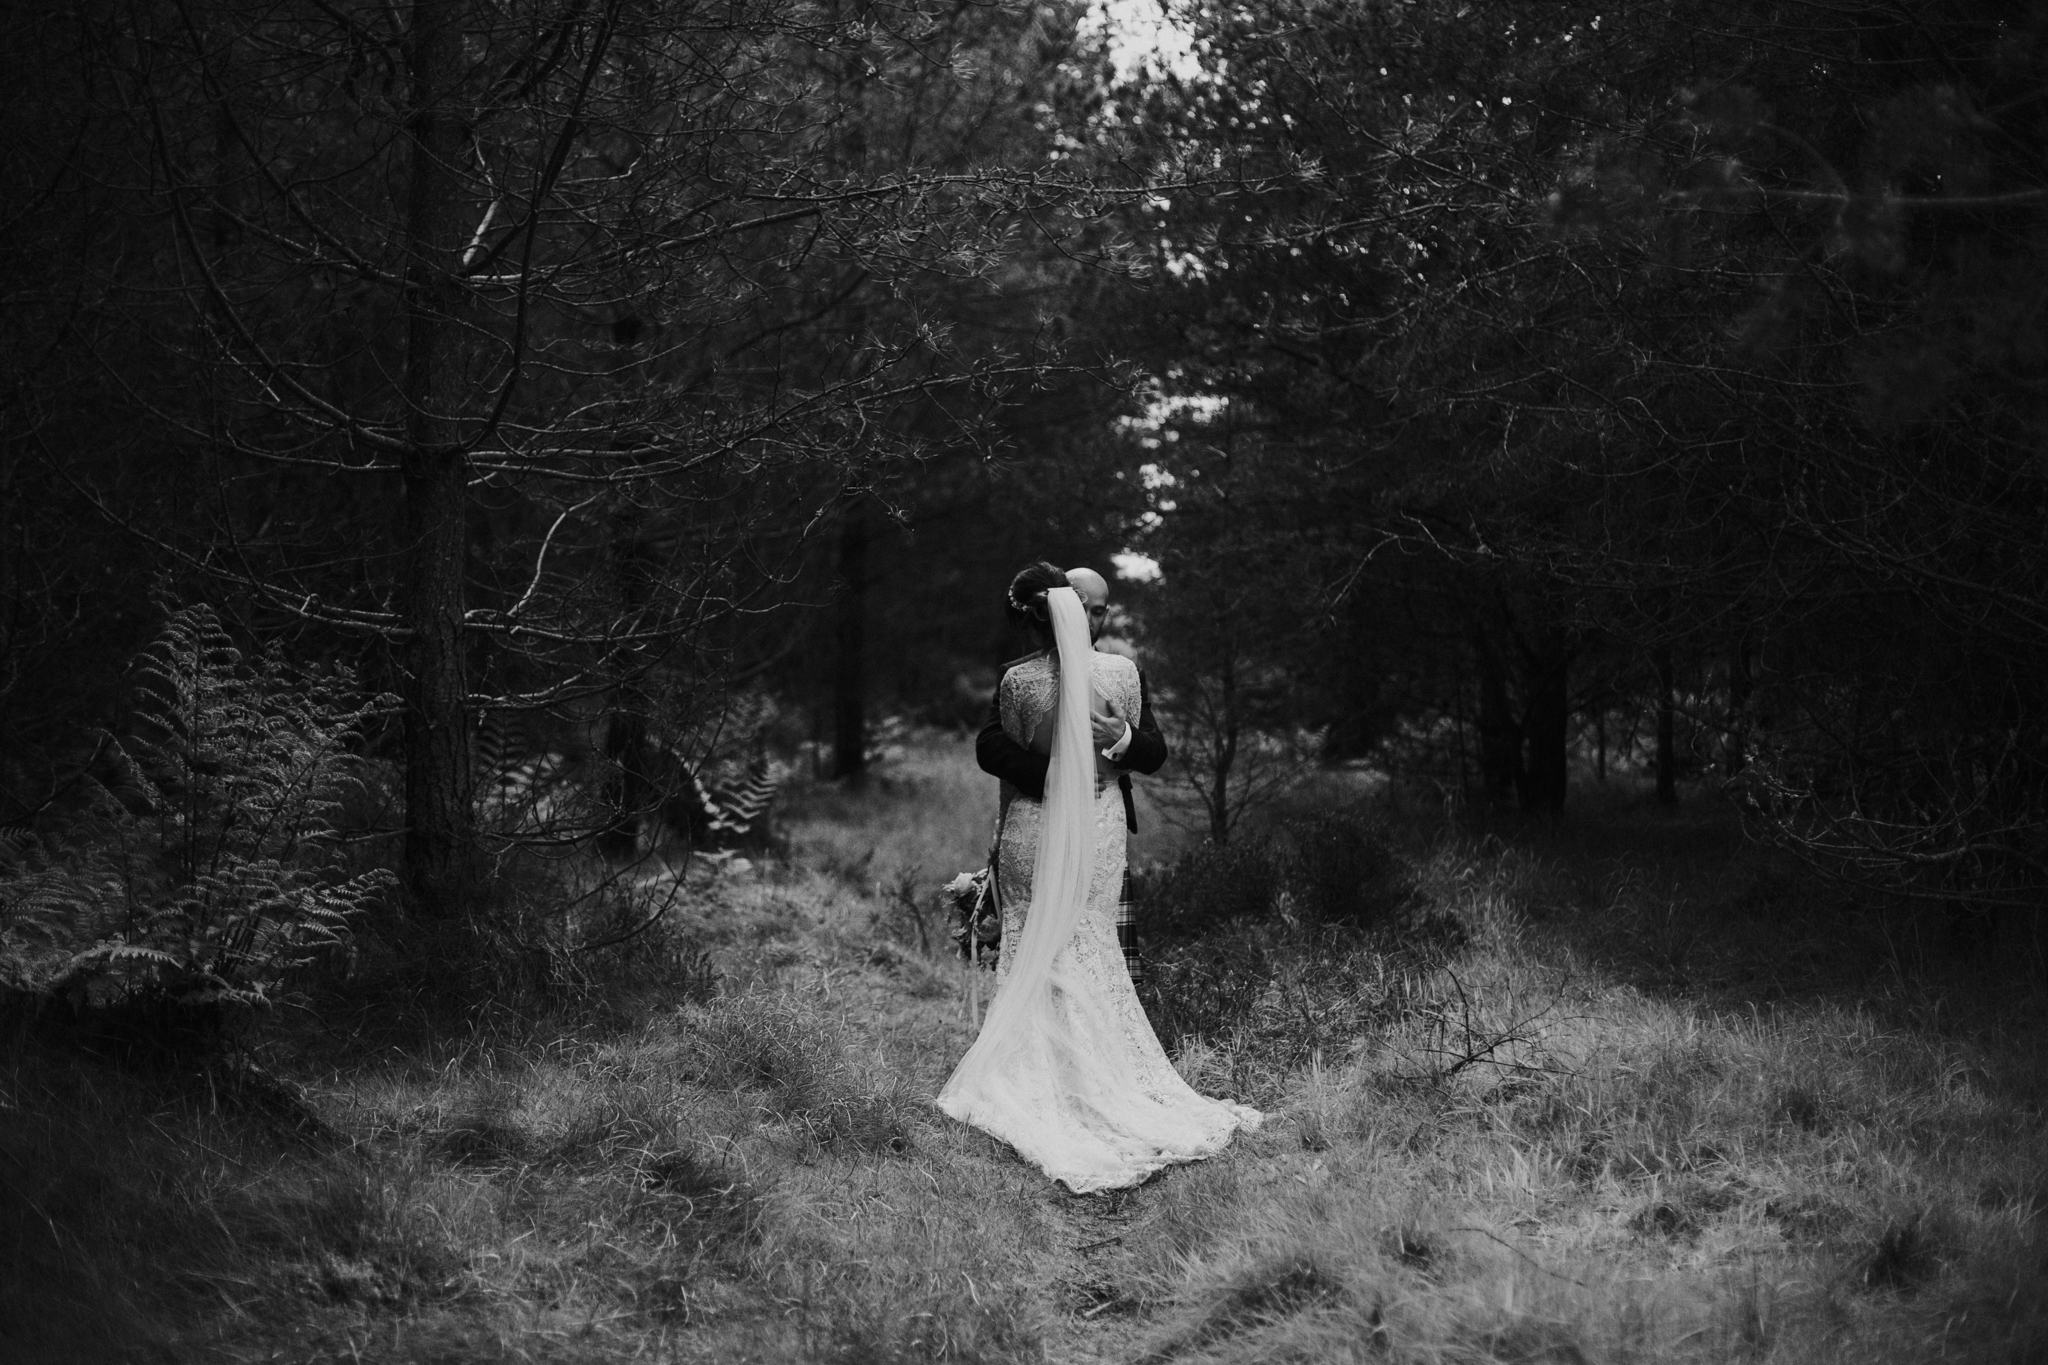 The creative and intimate shot of the newlyweds in the wild forest